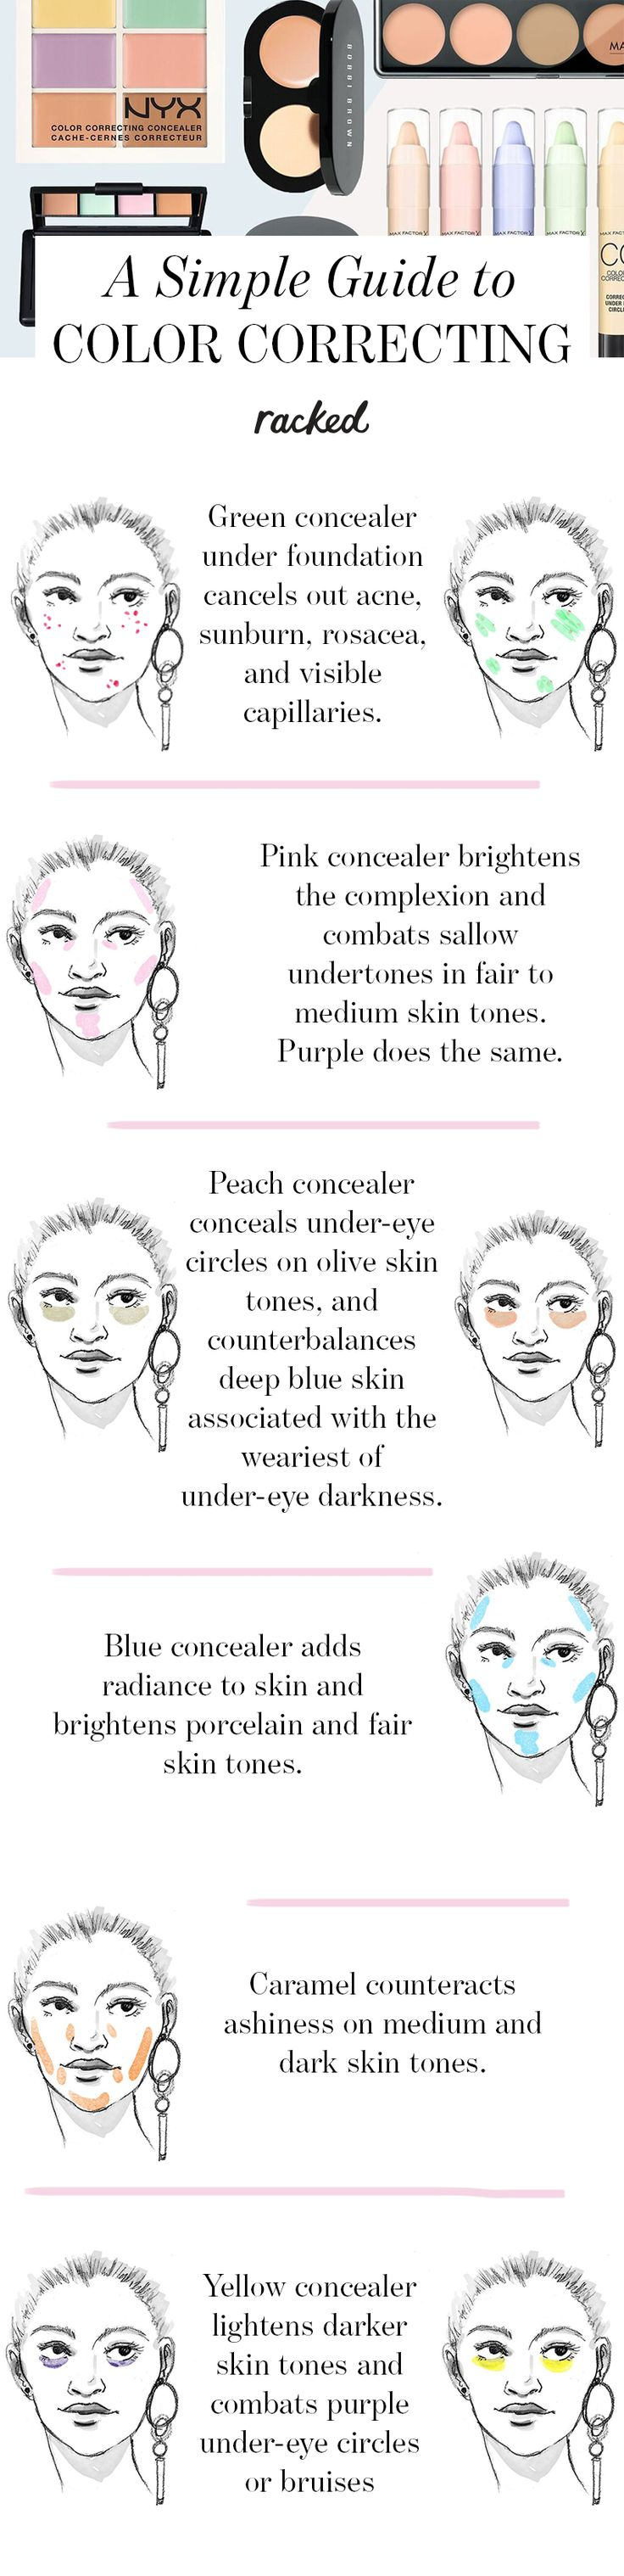 A Simple Guide to Color-Correcting Makeup, and How to Cover Blemishes. //Follow---Pinterest: BPAMC Instagram: @beautyproductsaremycardio for more beauty